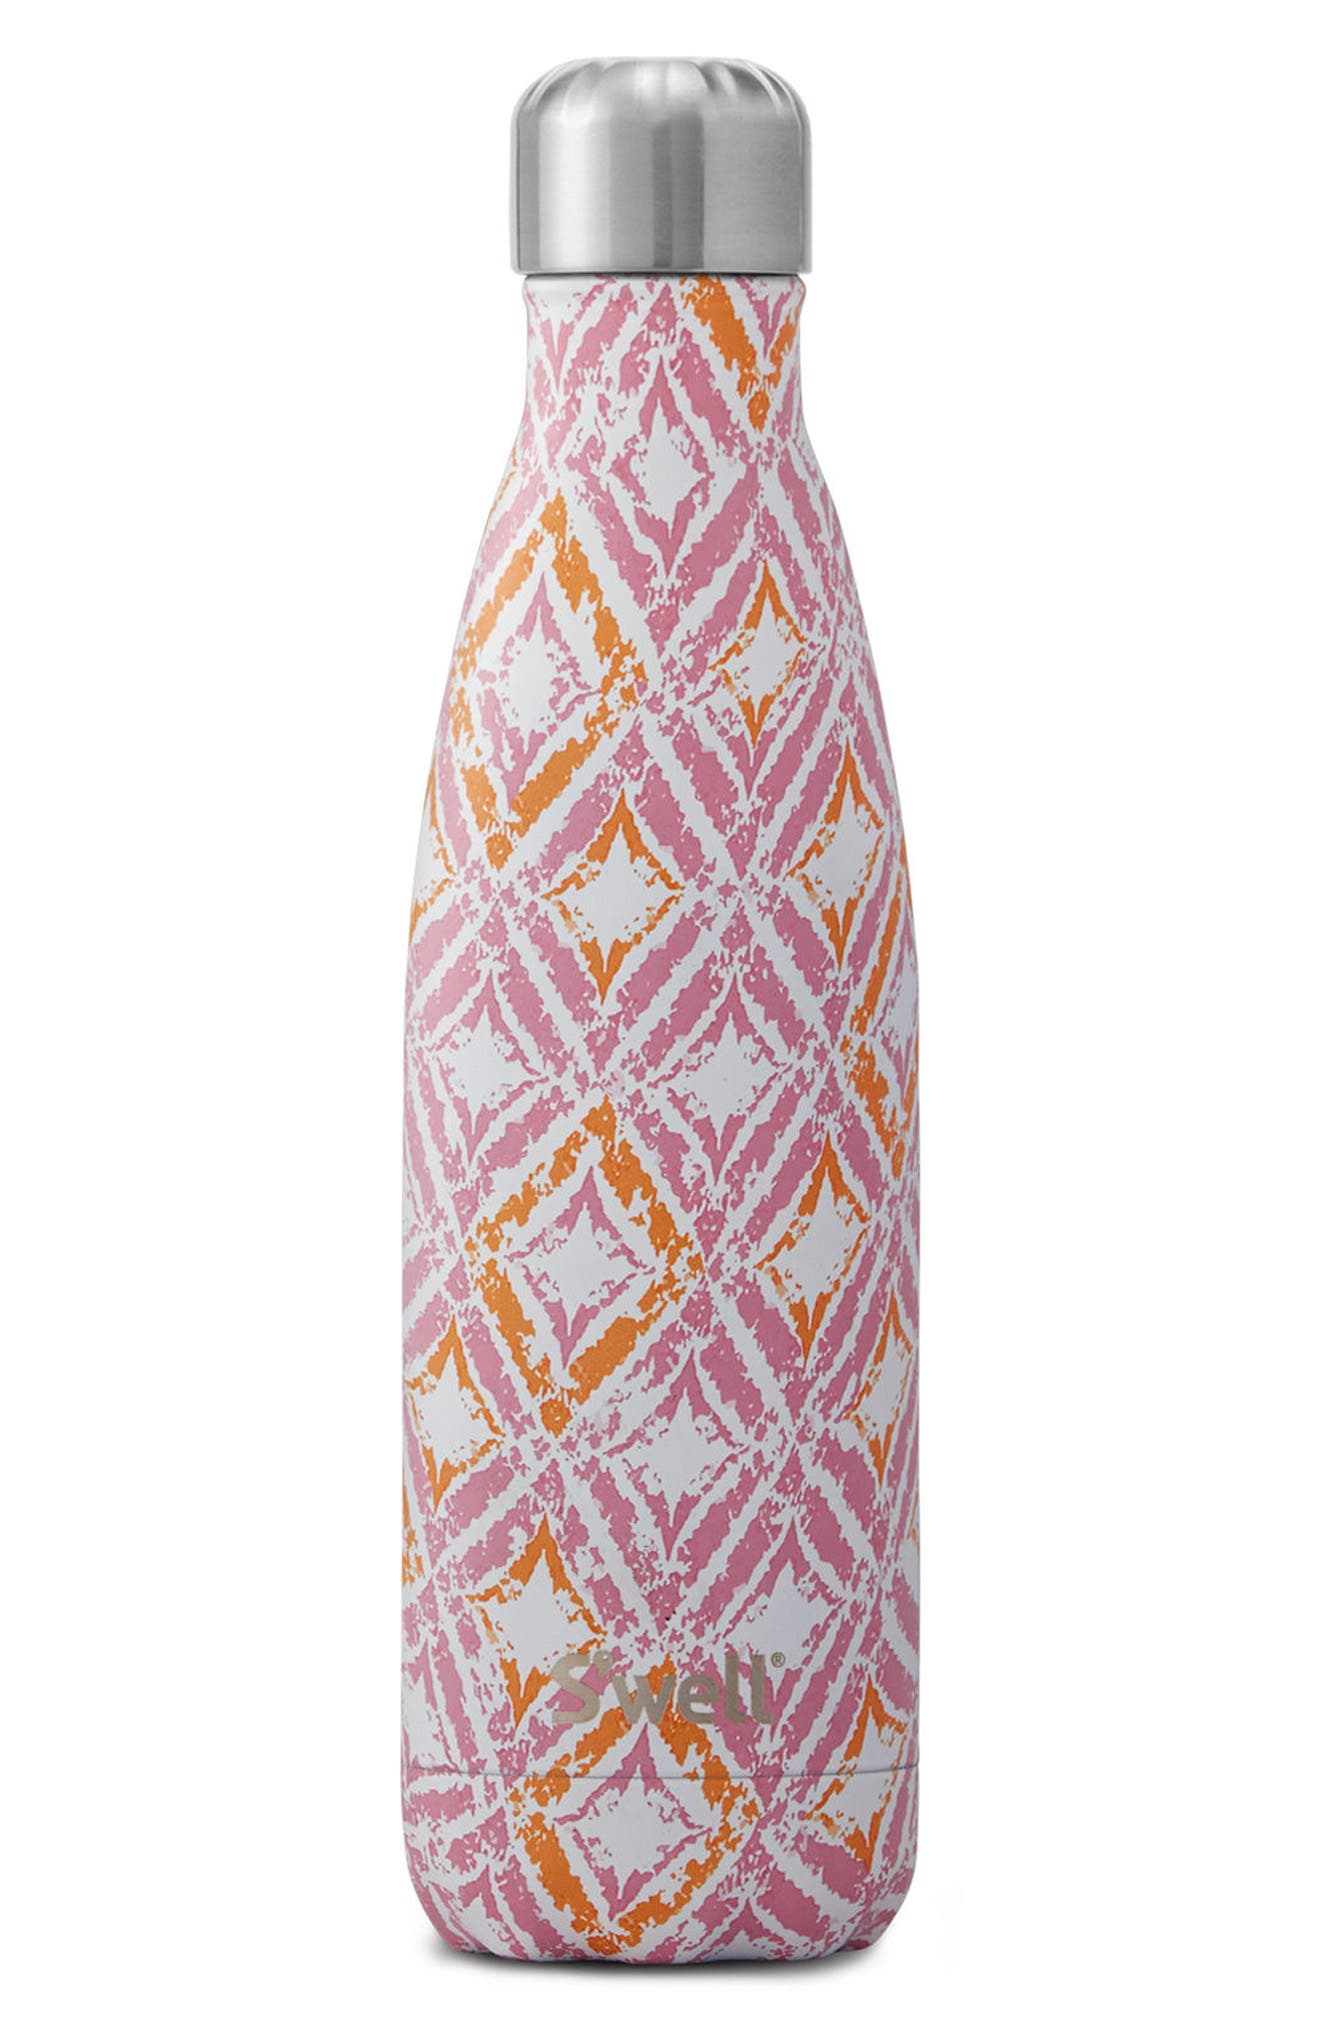 Odisha Insulated Stainless Steel Water Bottle,                             Main thumbnail 1, color,                             Odisha